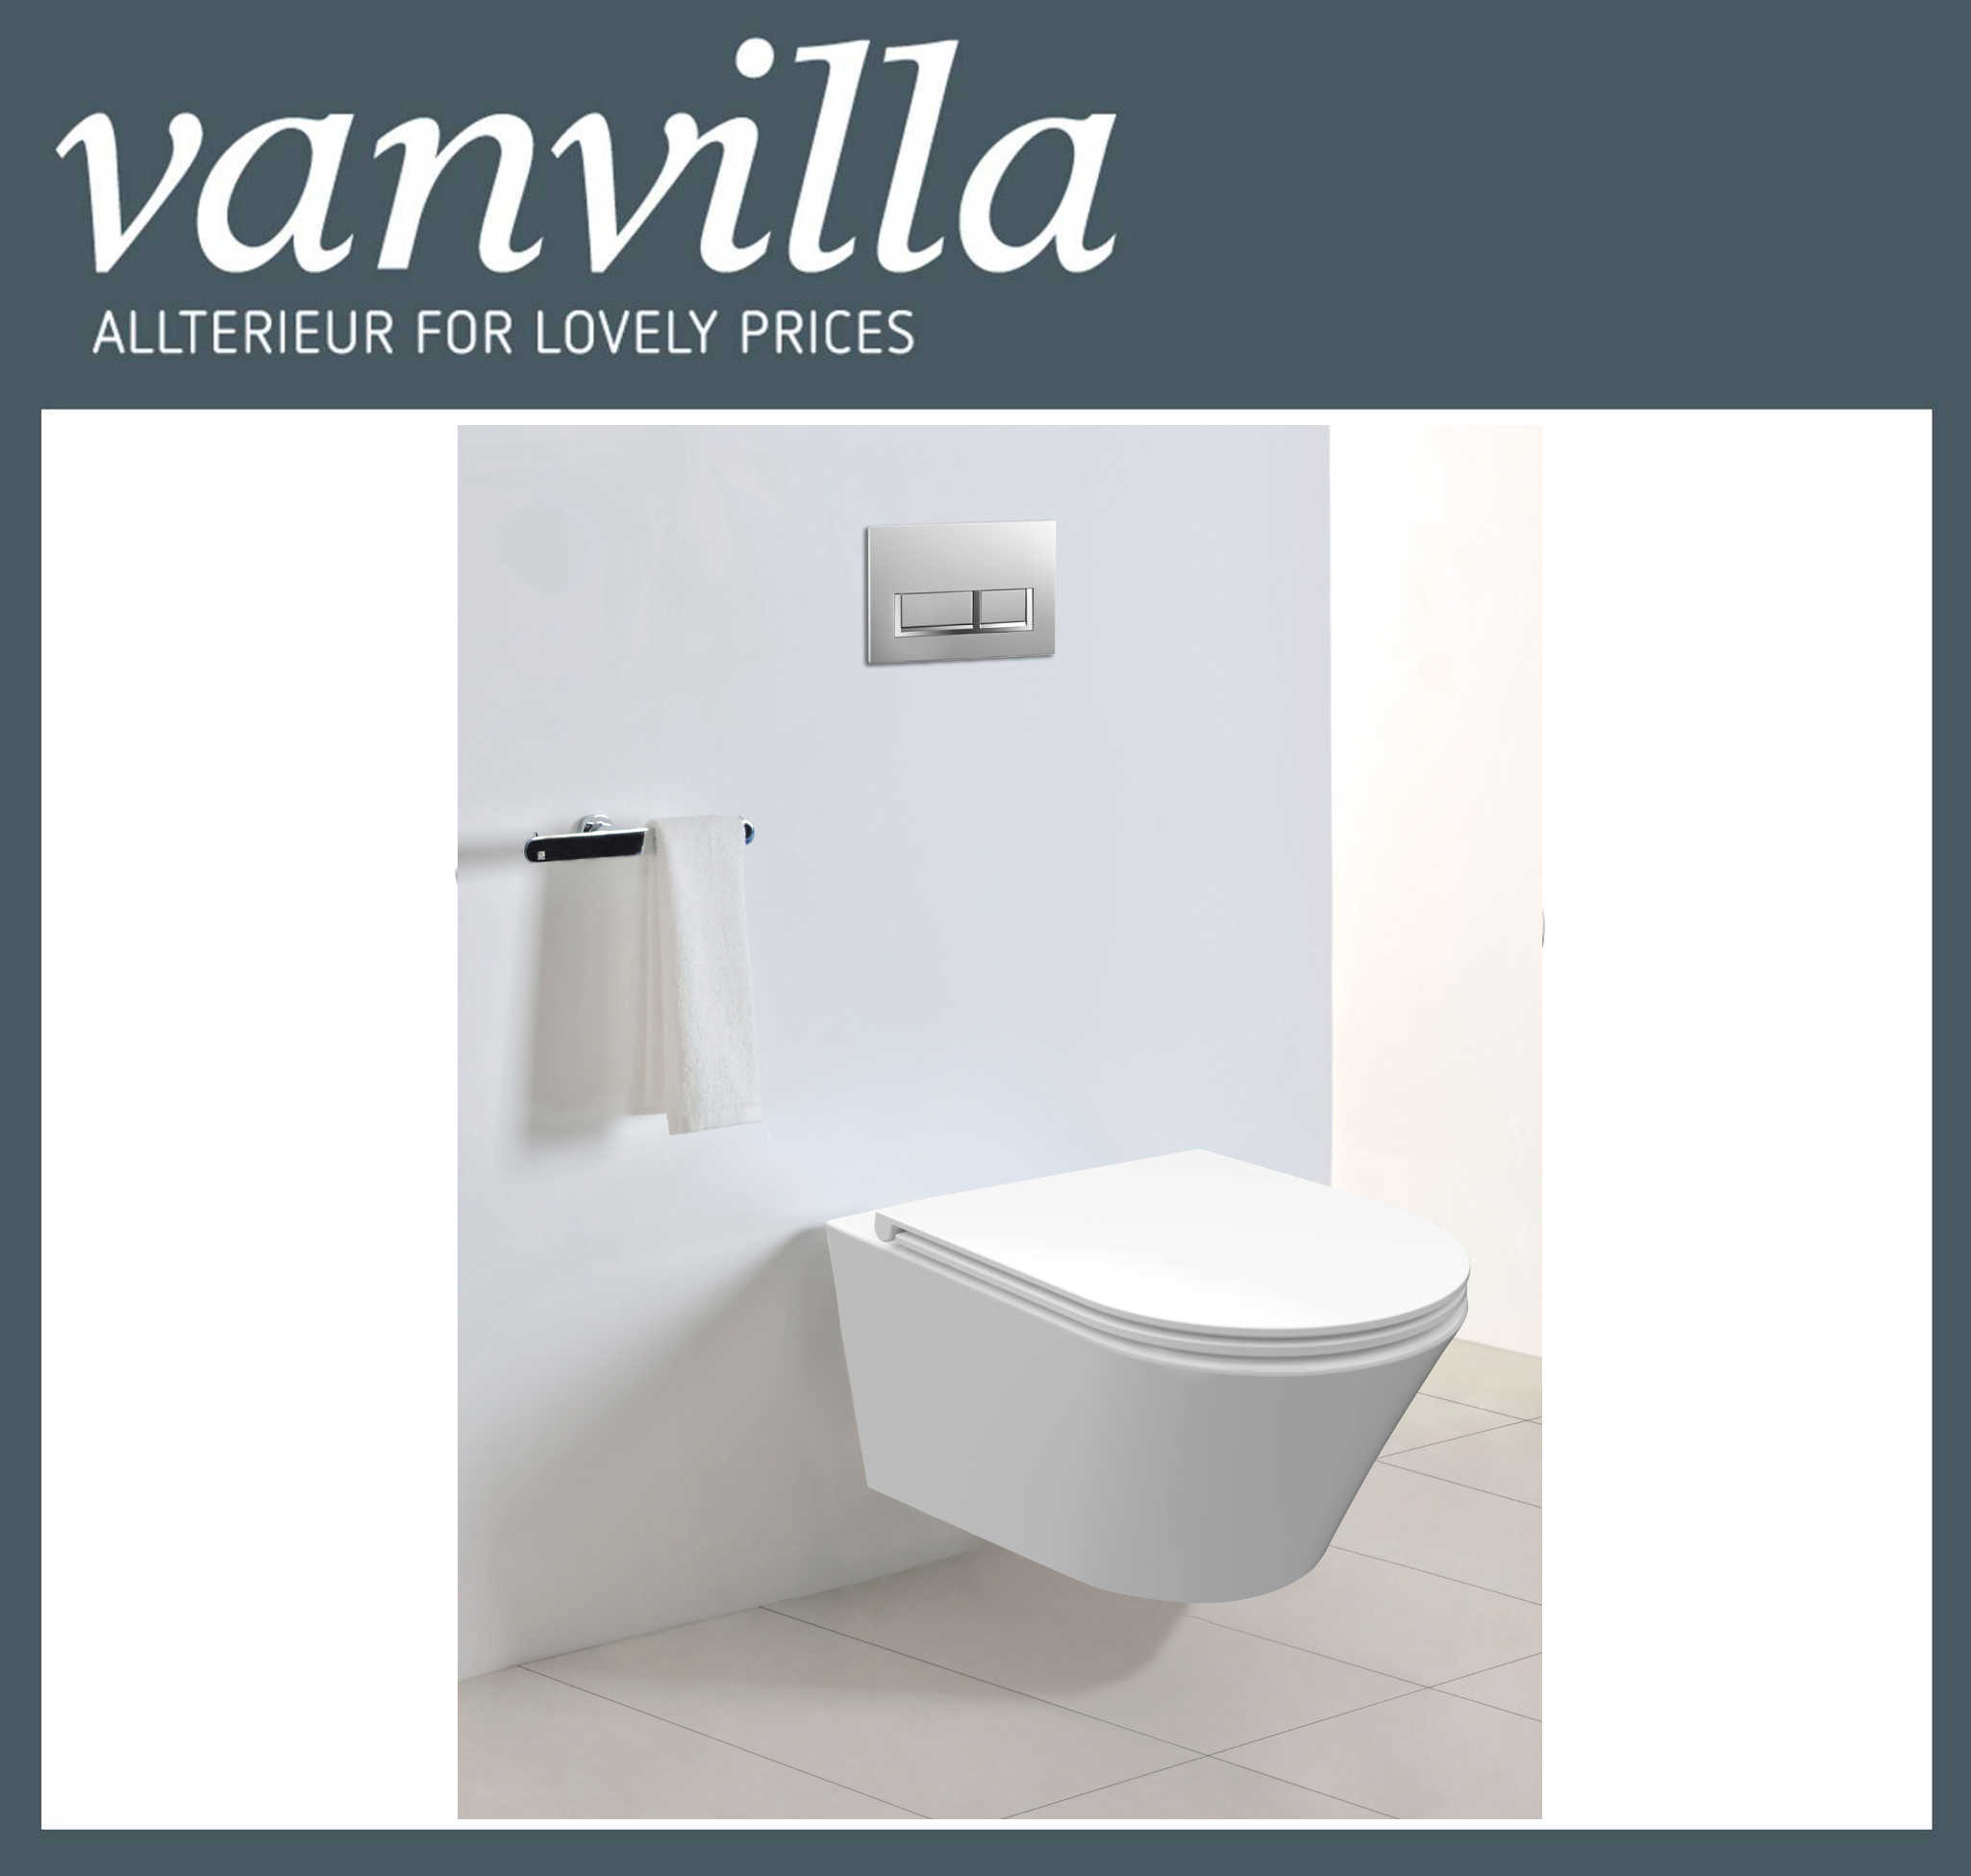 vanvilla Design Hänge WC Luanda inkl. Soft close spülrandlos rimless